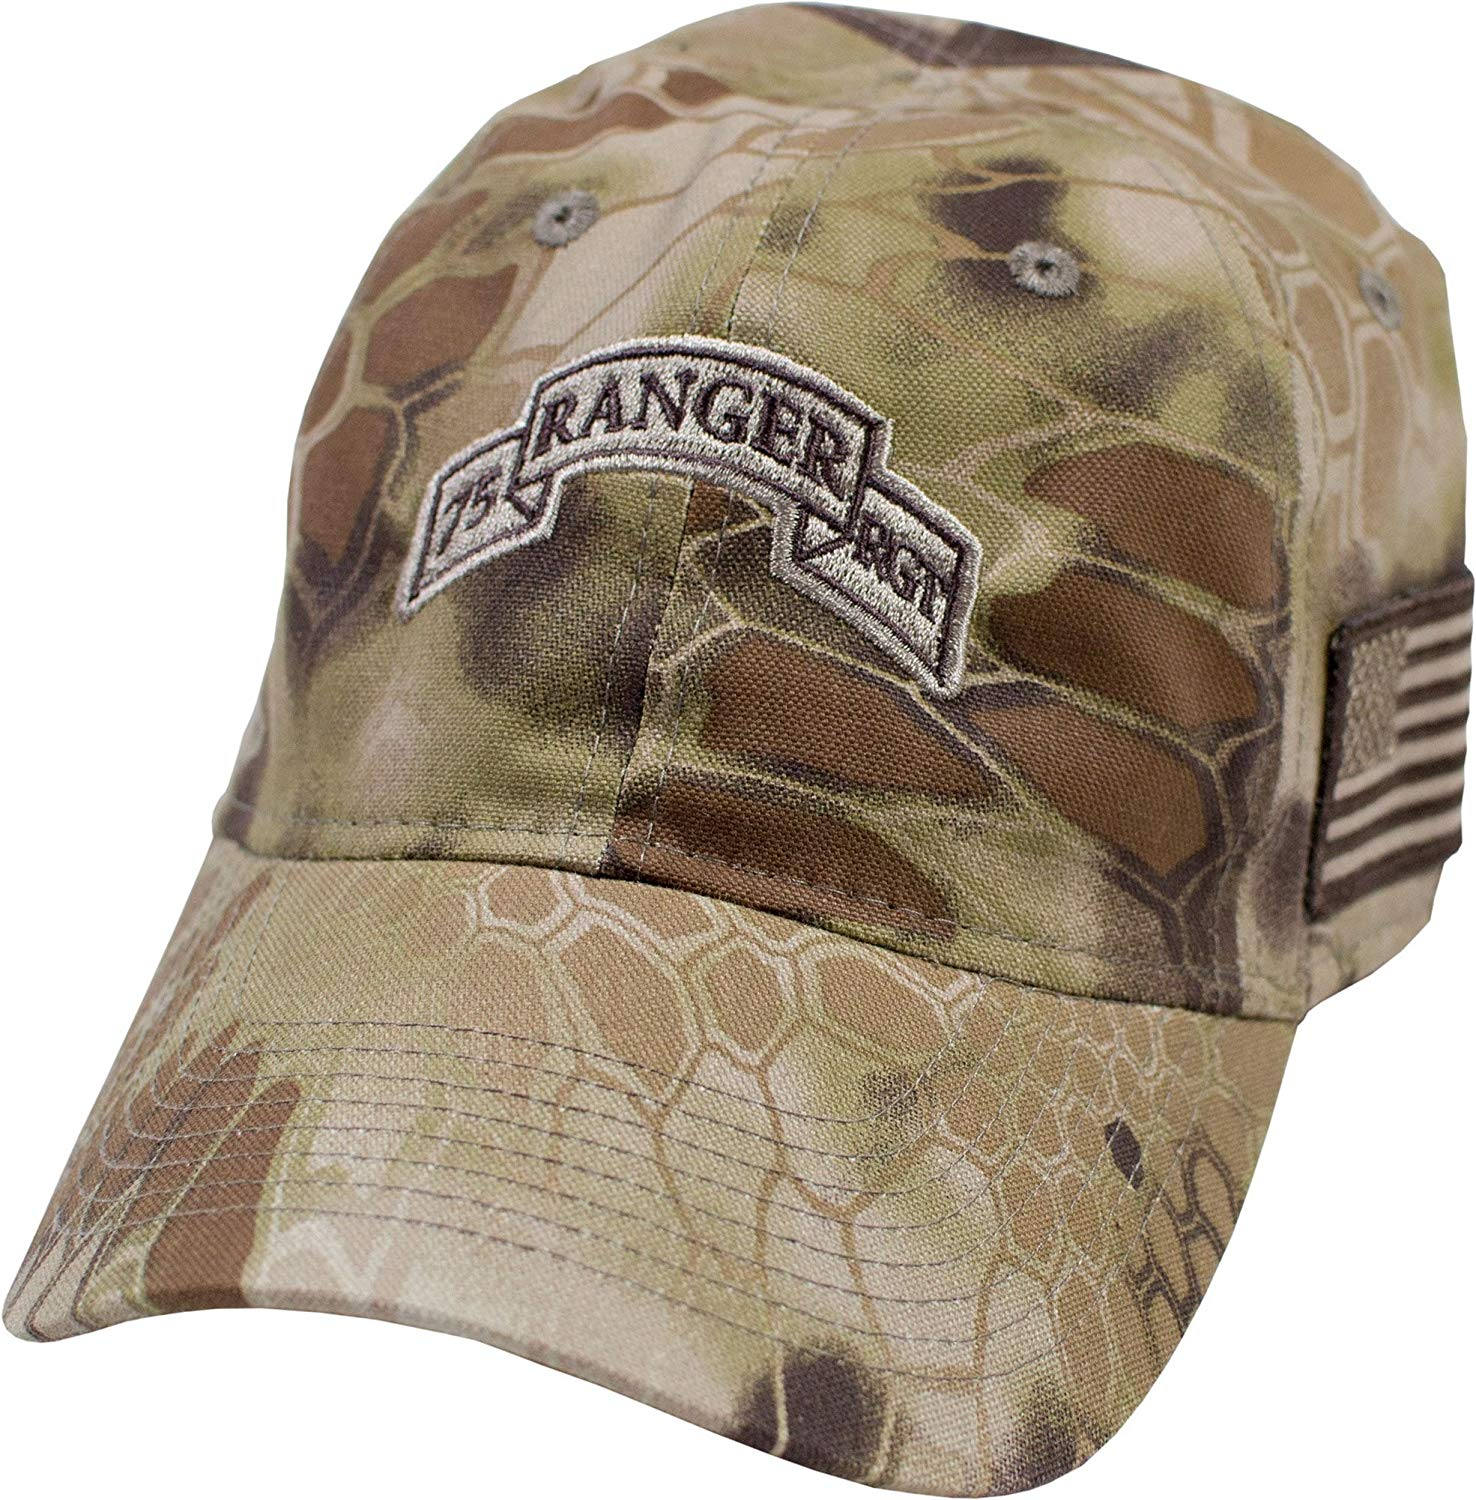 99ae729892c27 Get Quotations · Military Shirts U.S. Army 75th Ranger Regiment Kryptek  Camo Cap